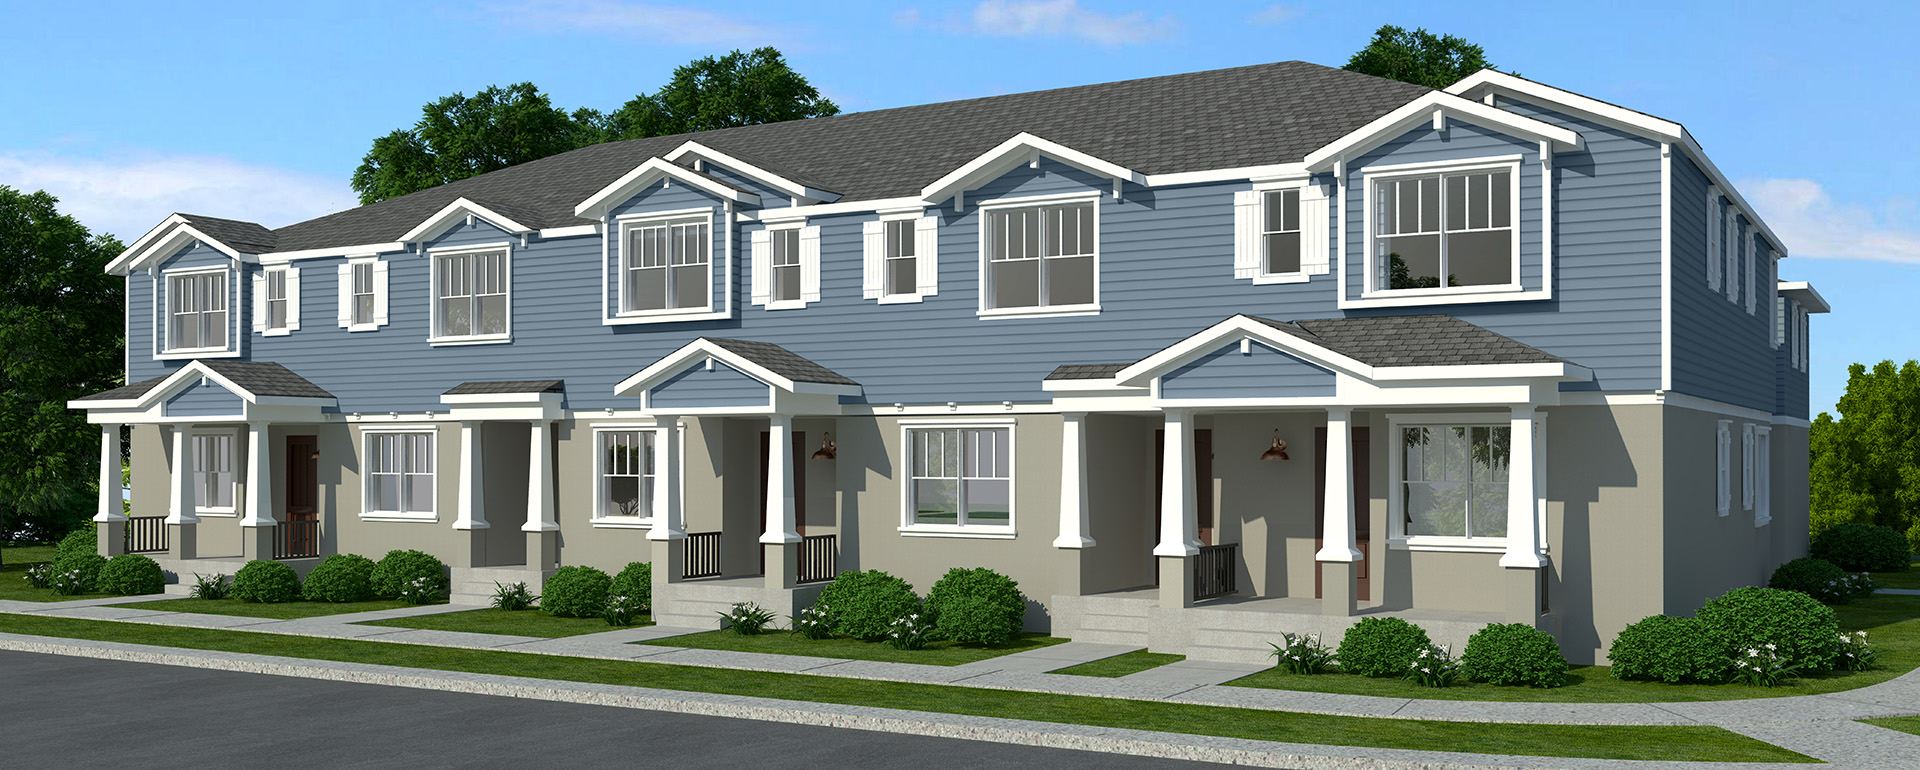 Royal Estates Luxury Townhomes - Windermere